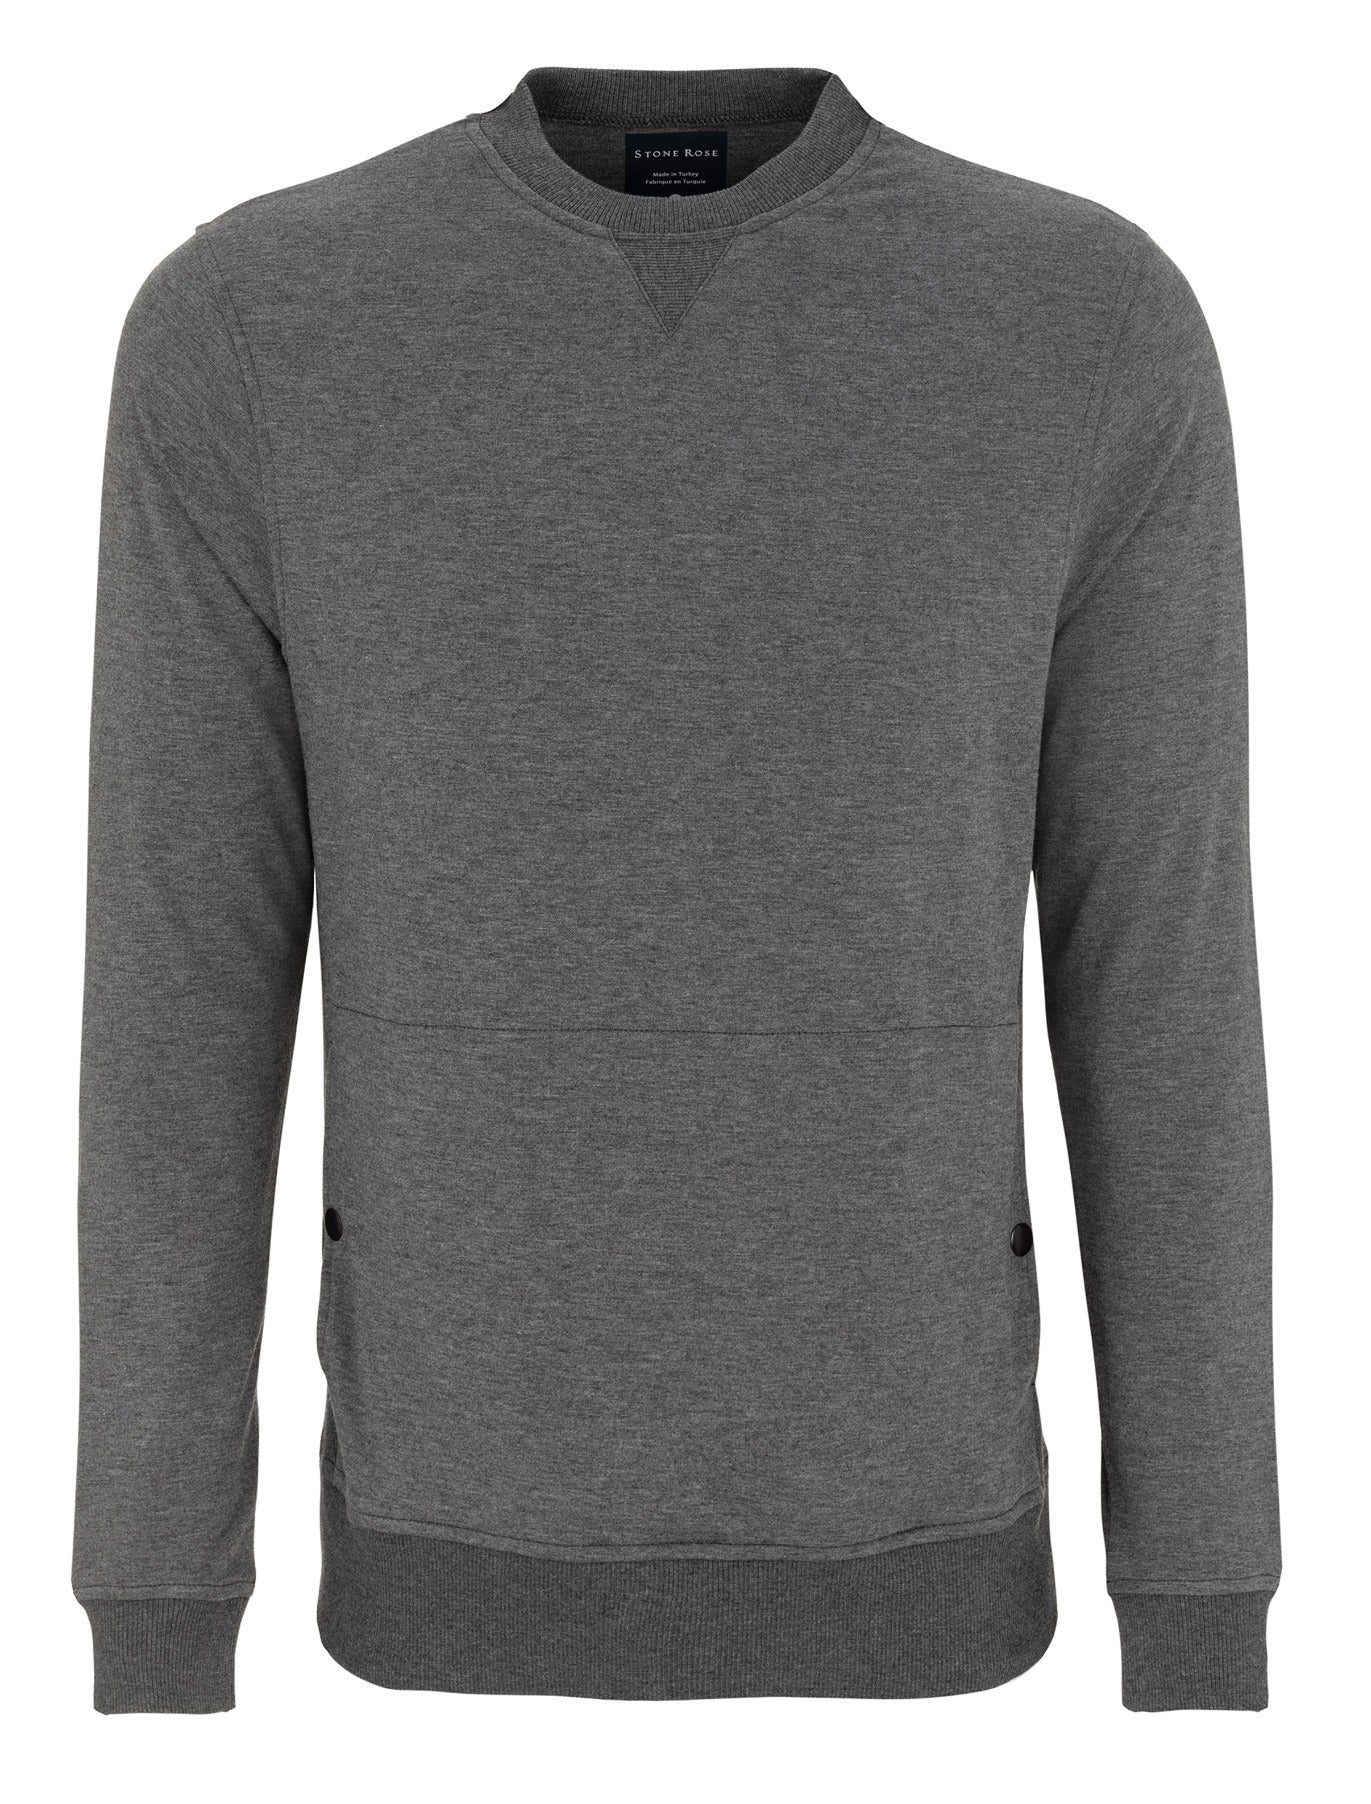 Gray Design Sweater